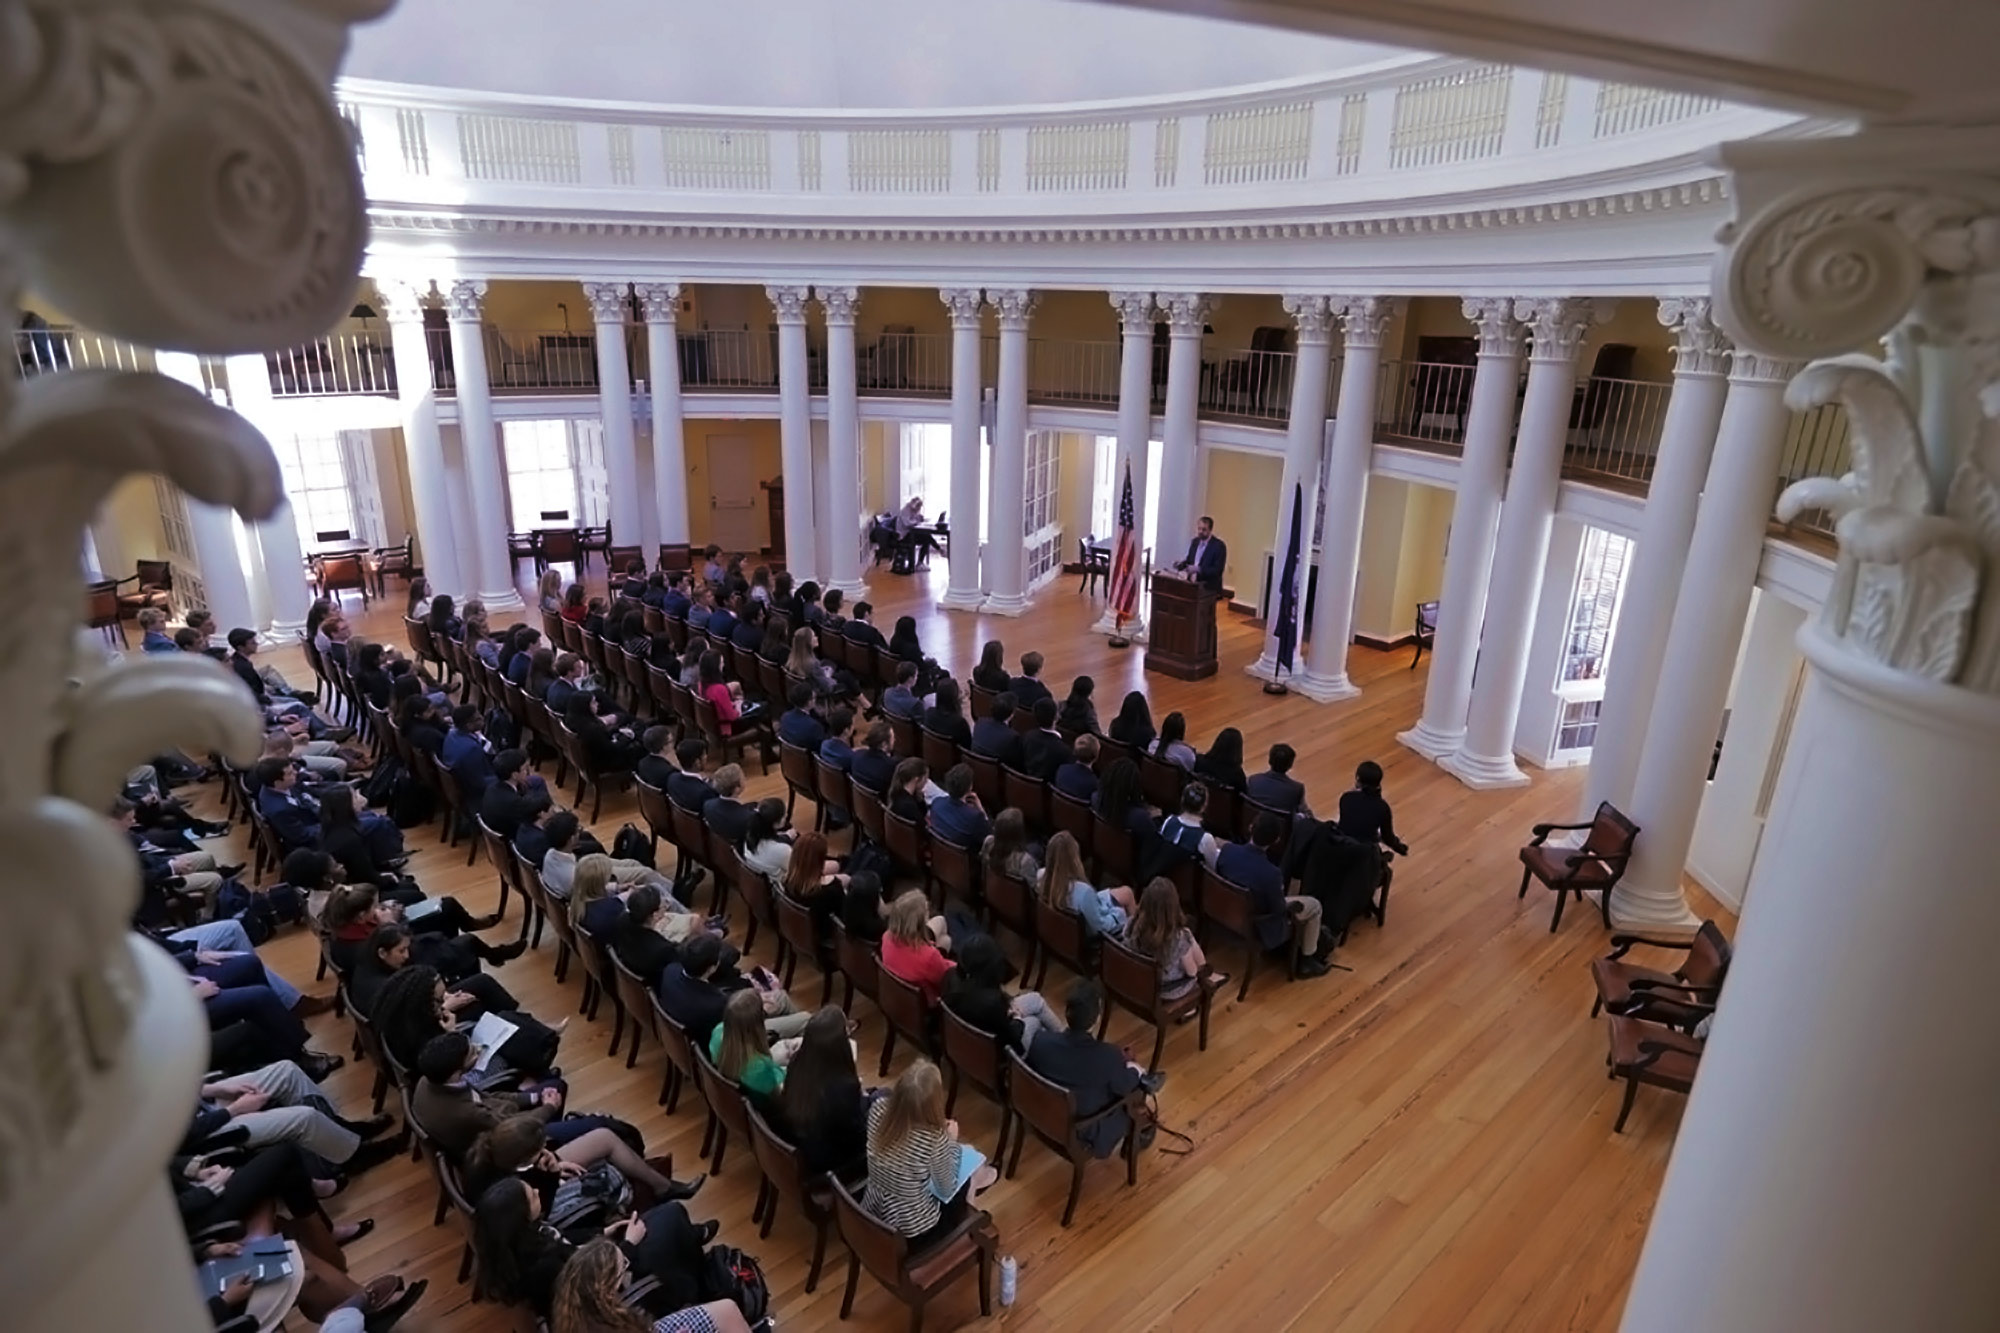 Jefferson Scholar finalists participated in a number of activities while on Grounds, including a seminar, an essay and mathematics examination and a round of interviews, as well as a discussion in the Rotunda Dome Room to learn more about the University.